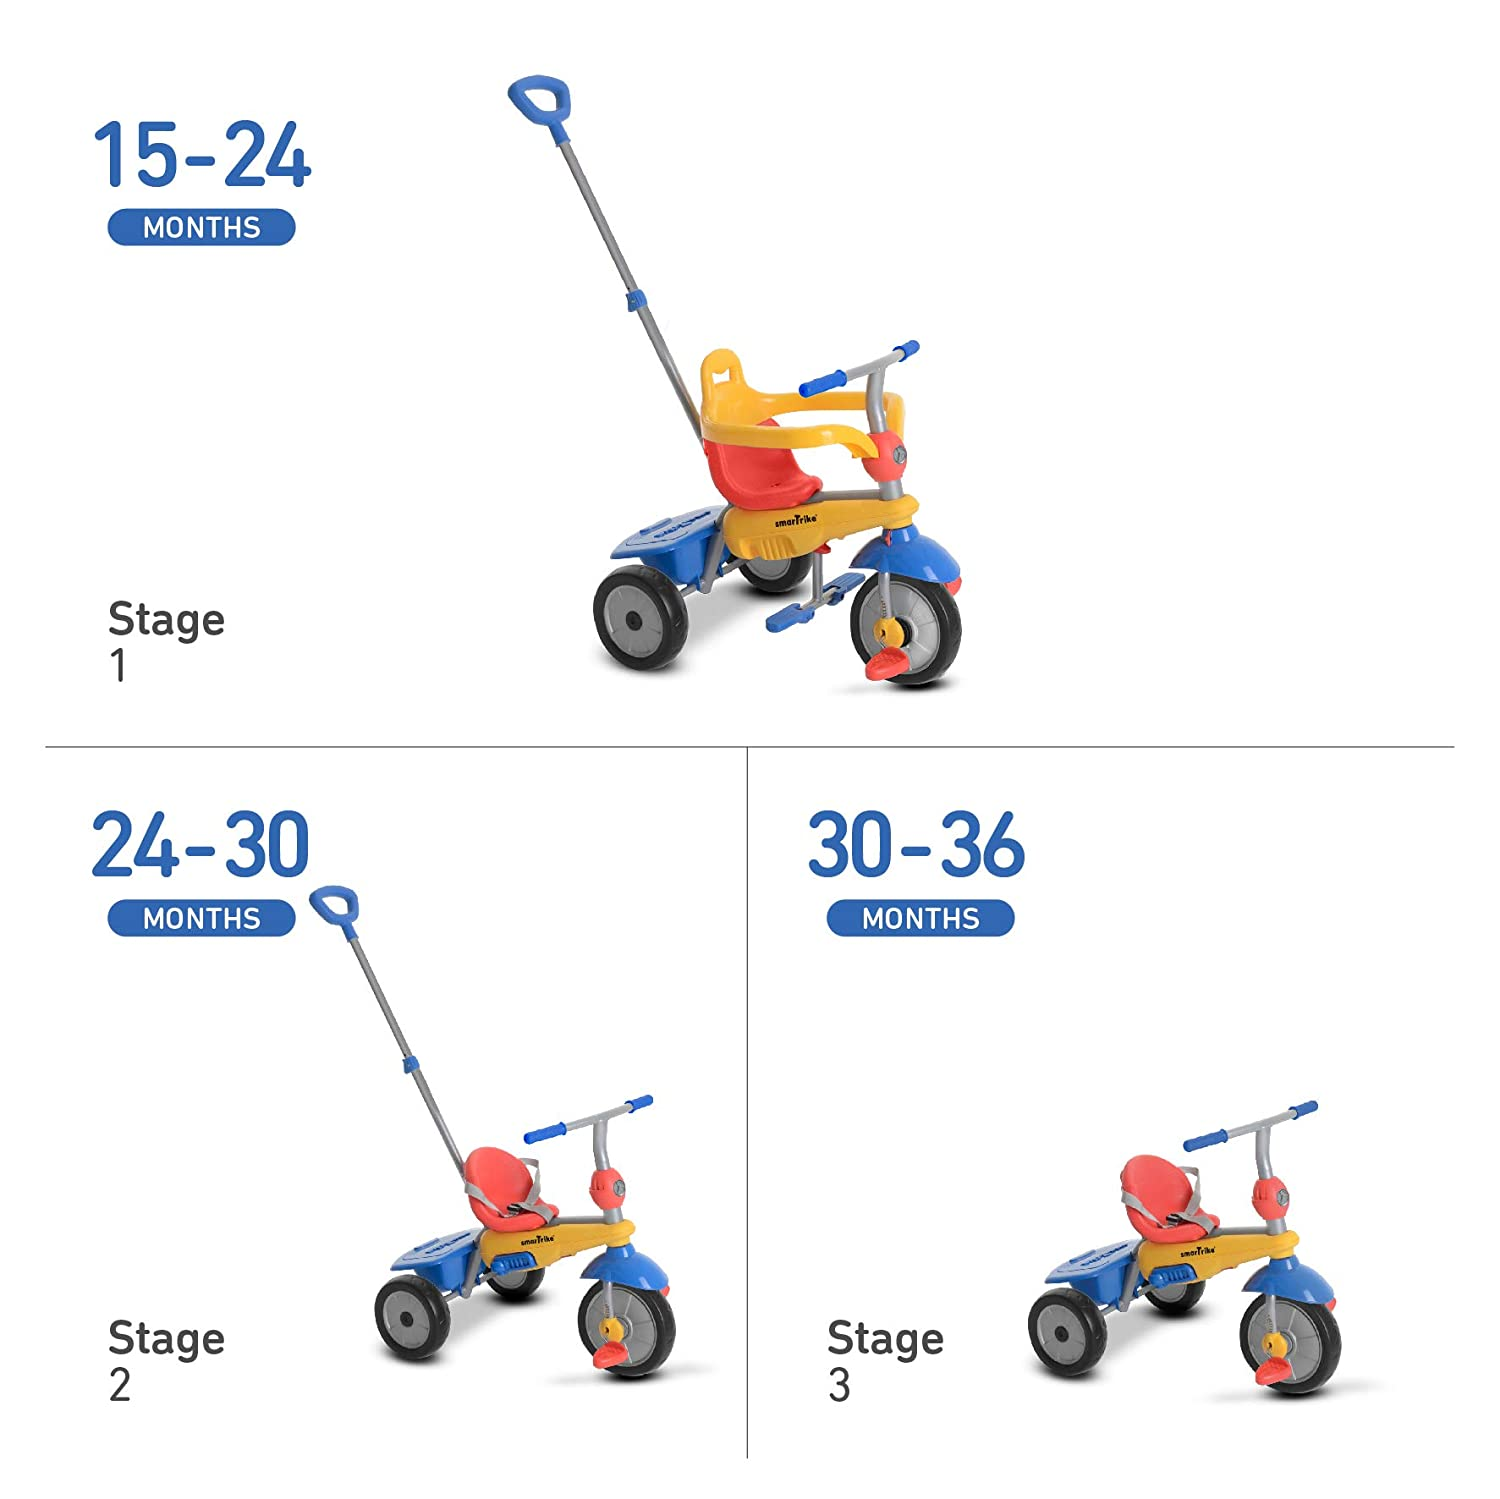 Amazon.com: SmarTrike Breeze - Bicicleta para bebé: Toys & Games